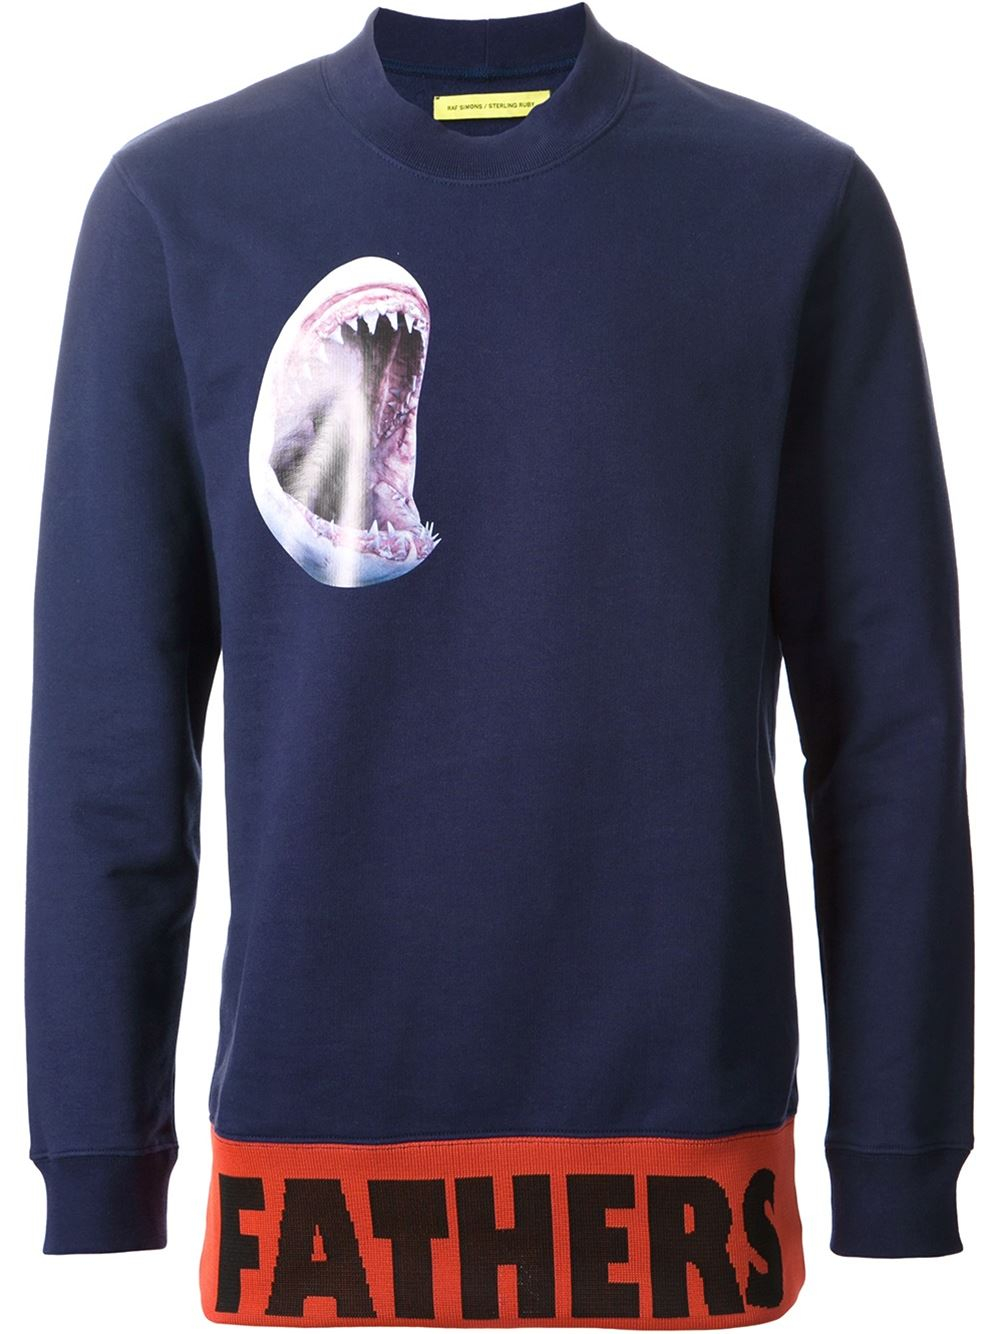 Raf Simons Father Sweatshirt in Blue for Men